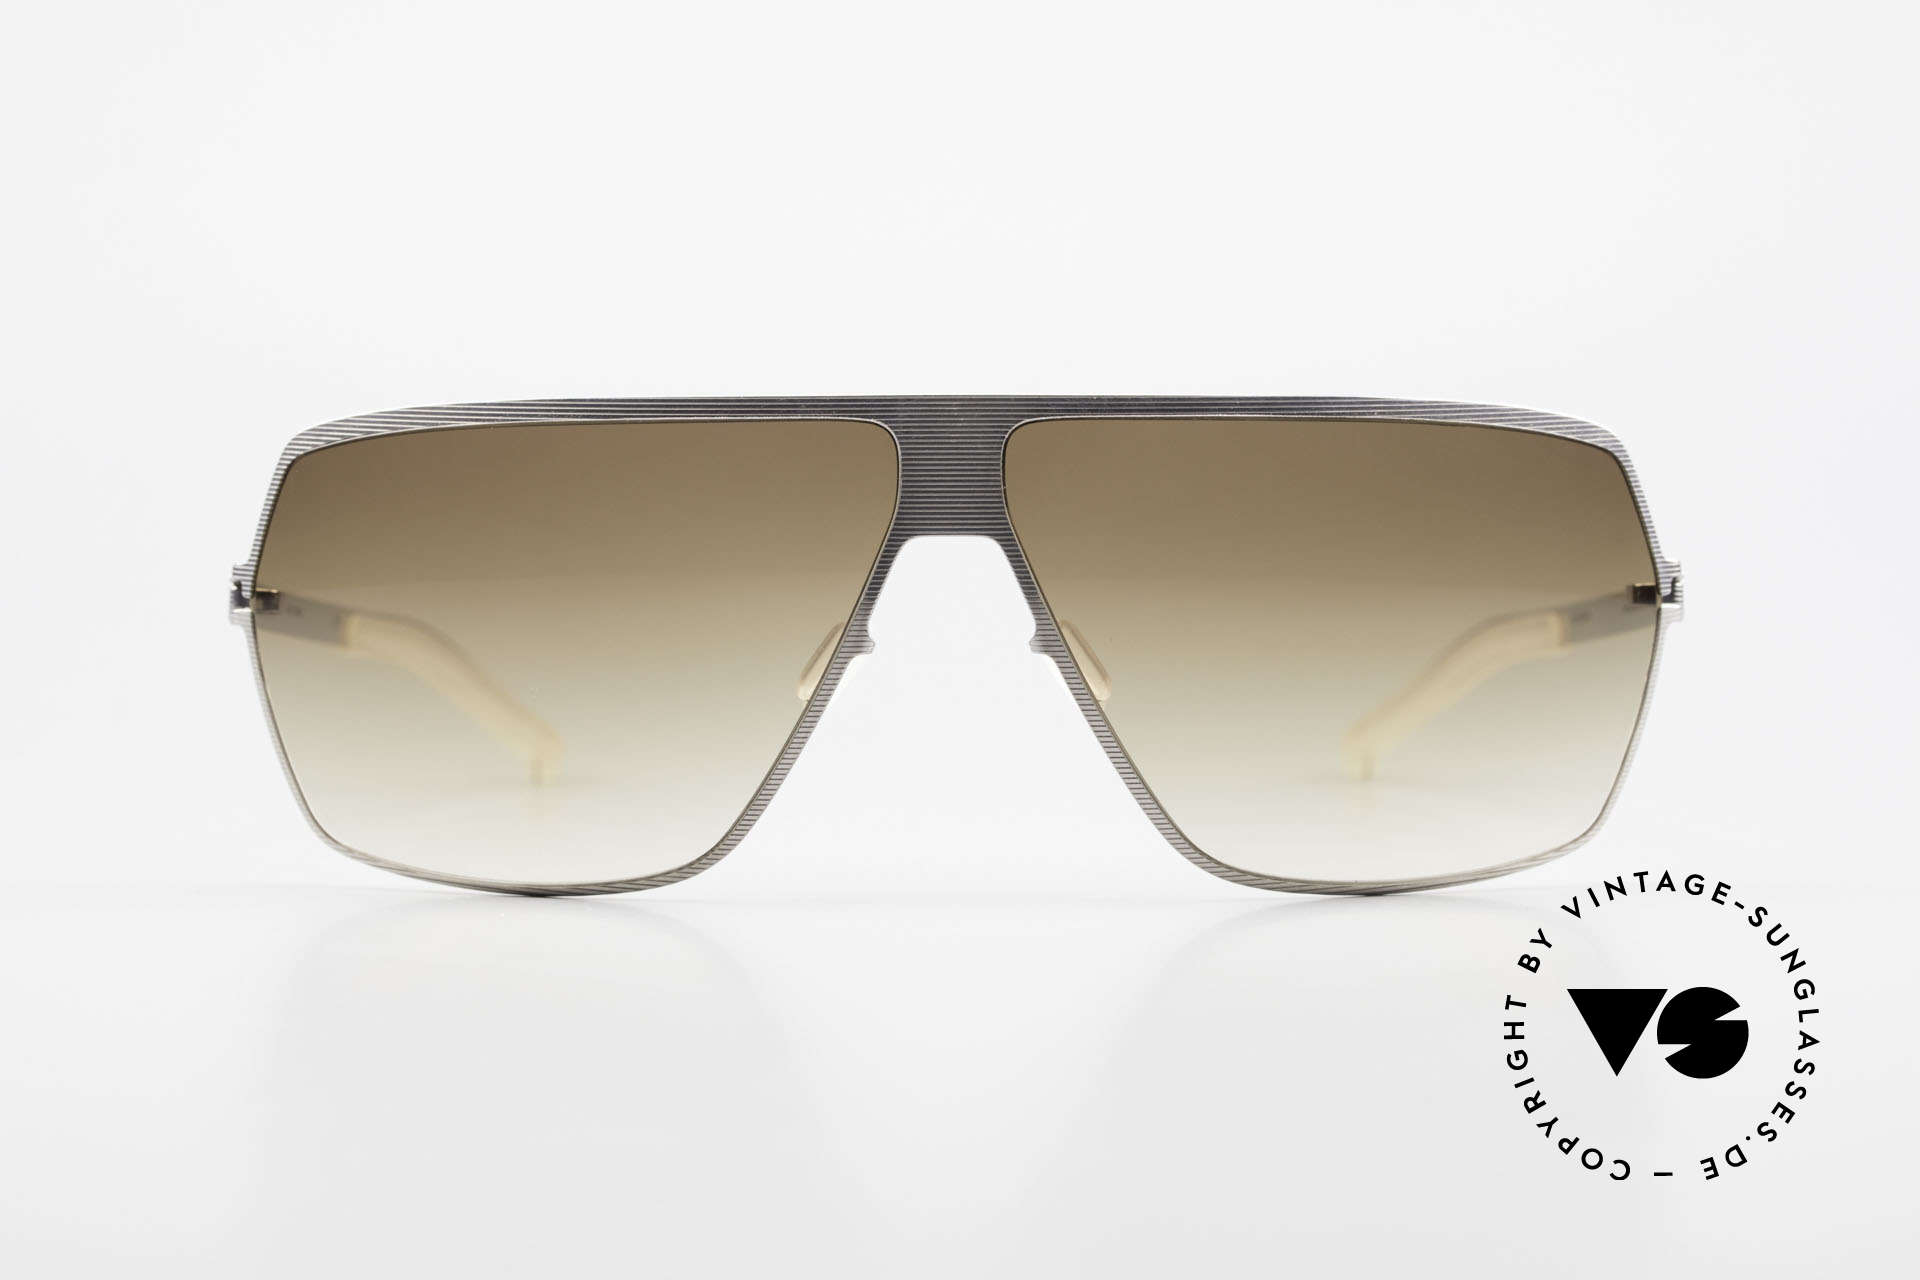 Mykita Rock No1 Collection Sunglasses 2009, MYKITA: the youngest brand in our vintage collection, Made for Men